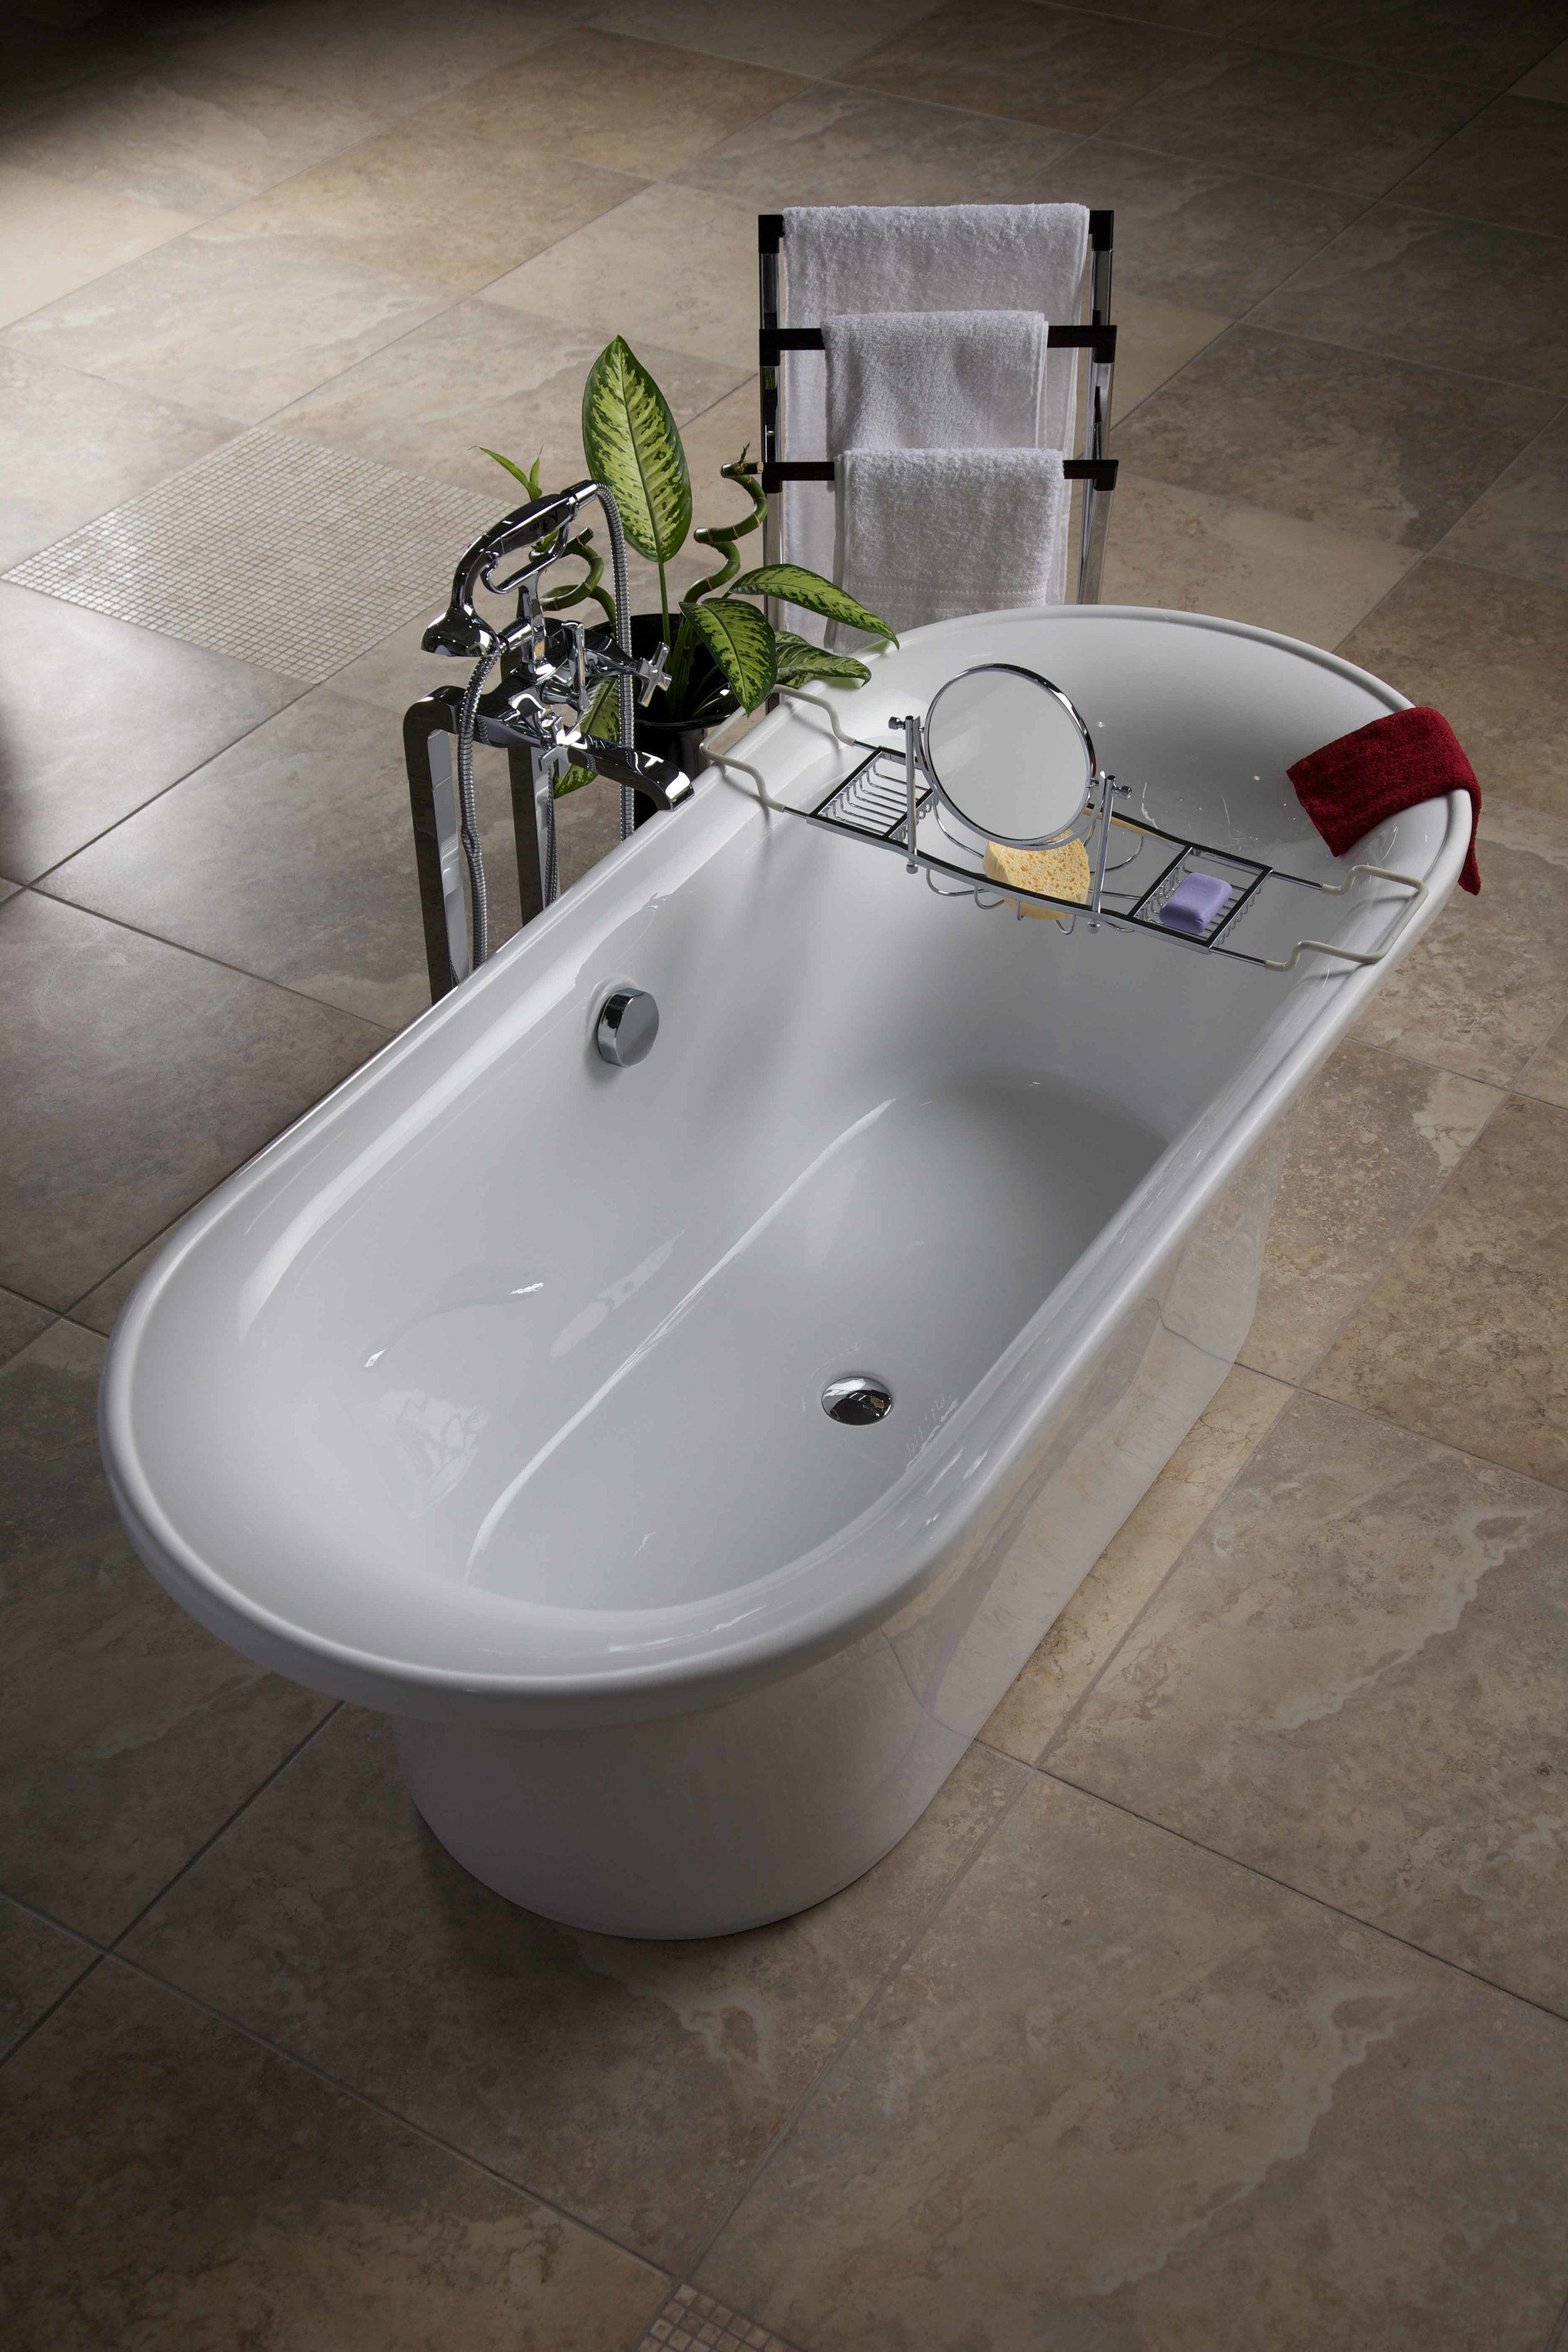 Kudos%20Dream%20Bath%20Tub%20(DC).jpg